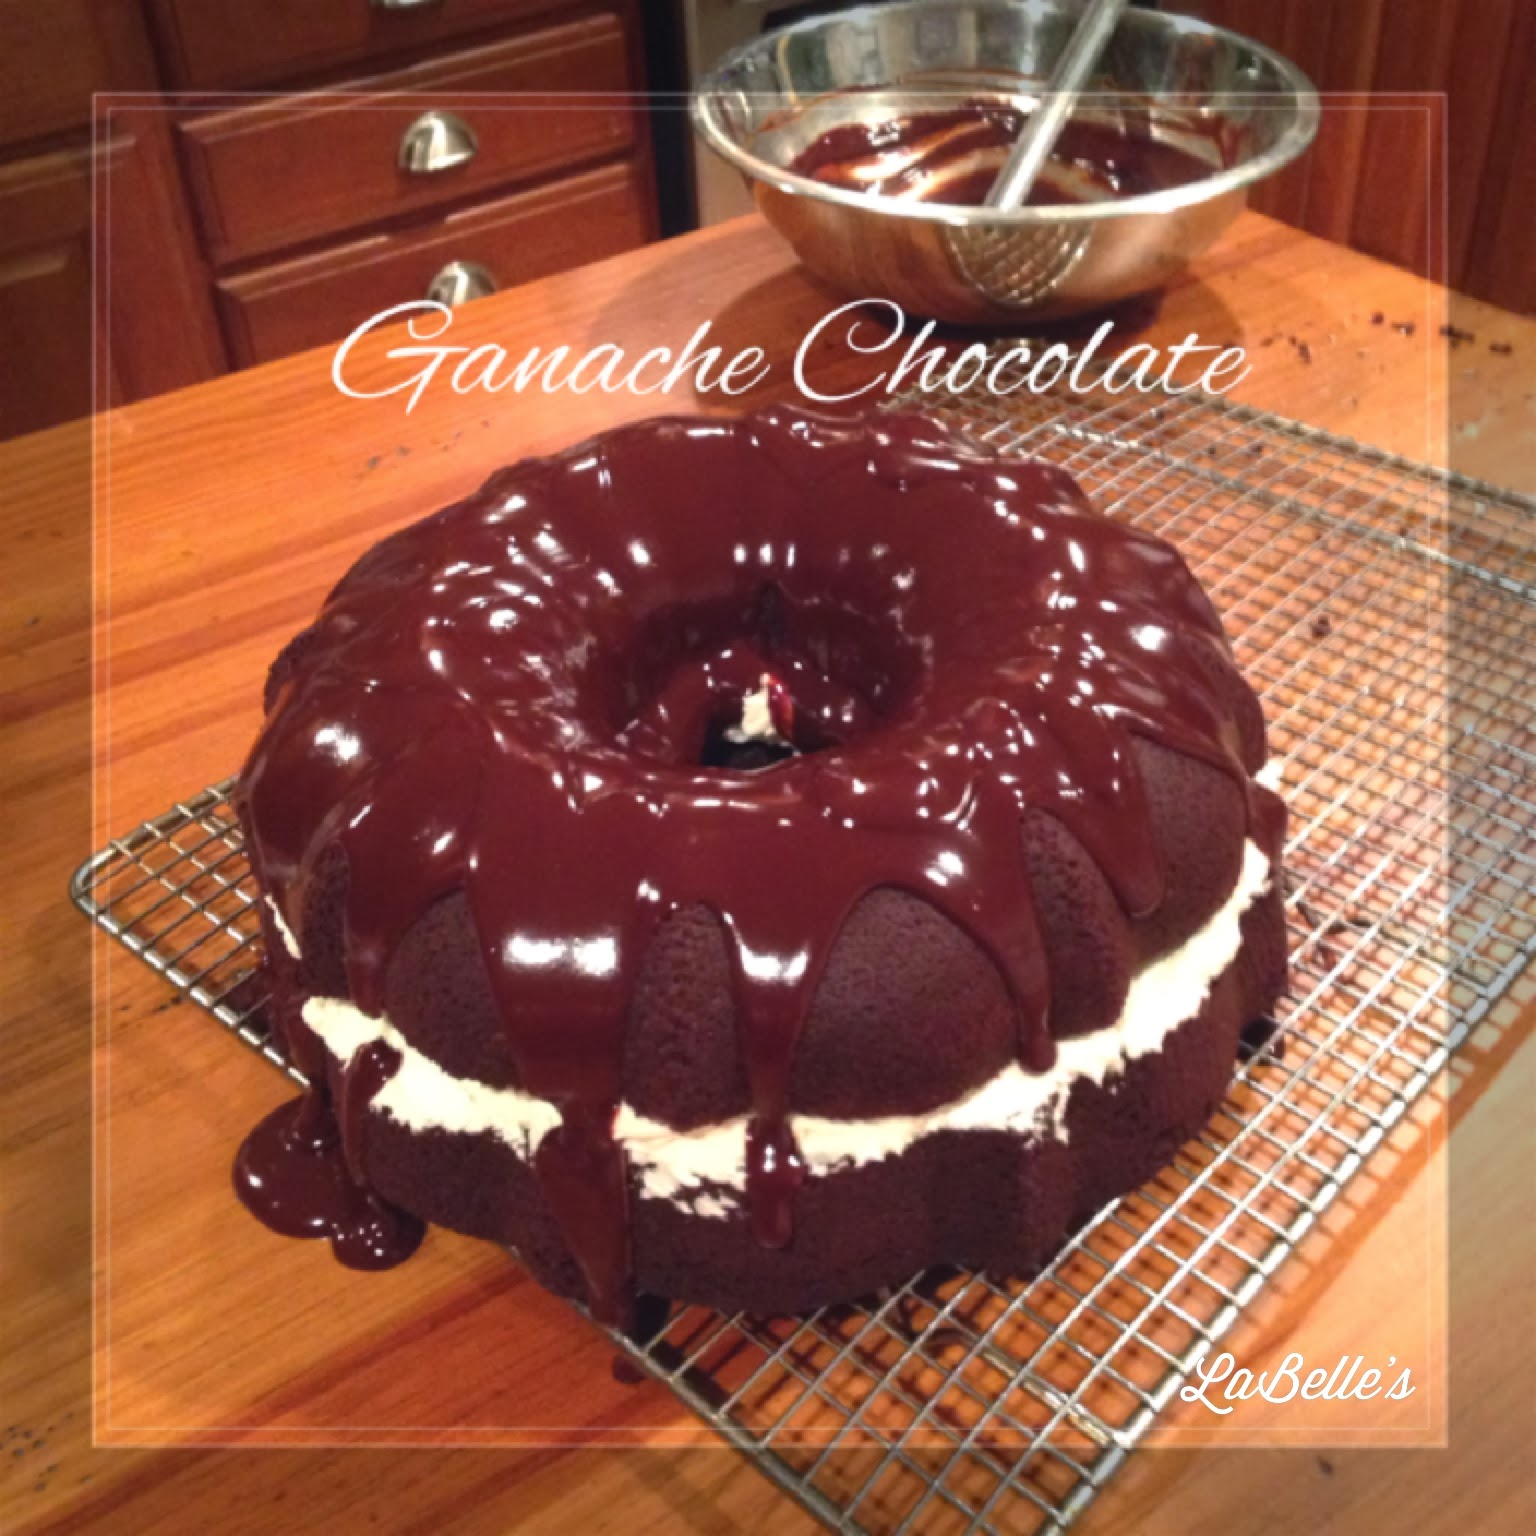 Ganache chocolate is the perfect accompaniment to Bundt Cake, especially Devil Dog Bundt Cake